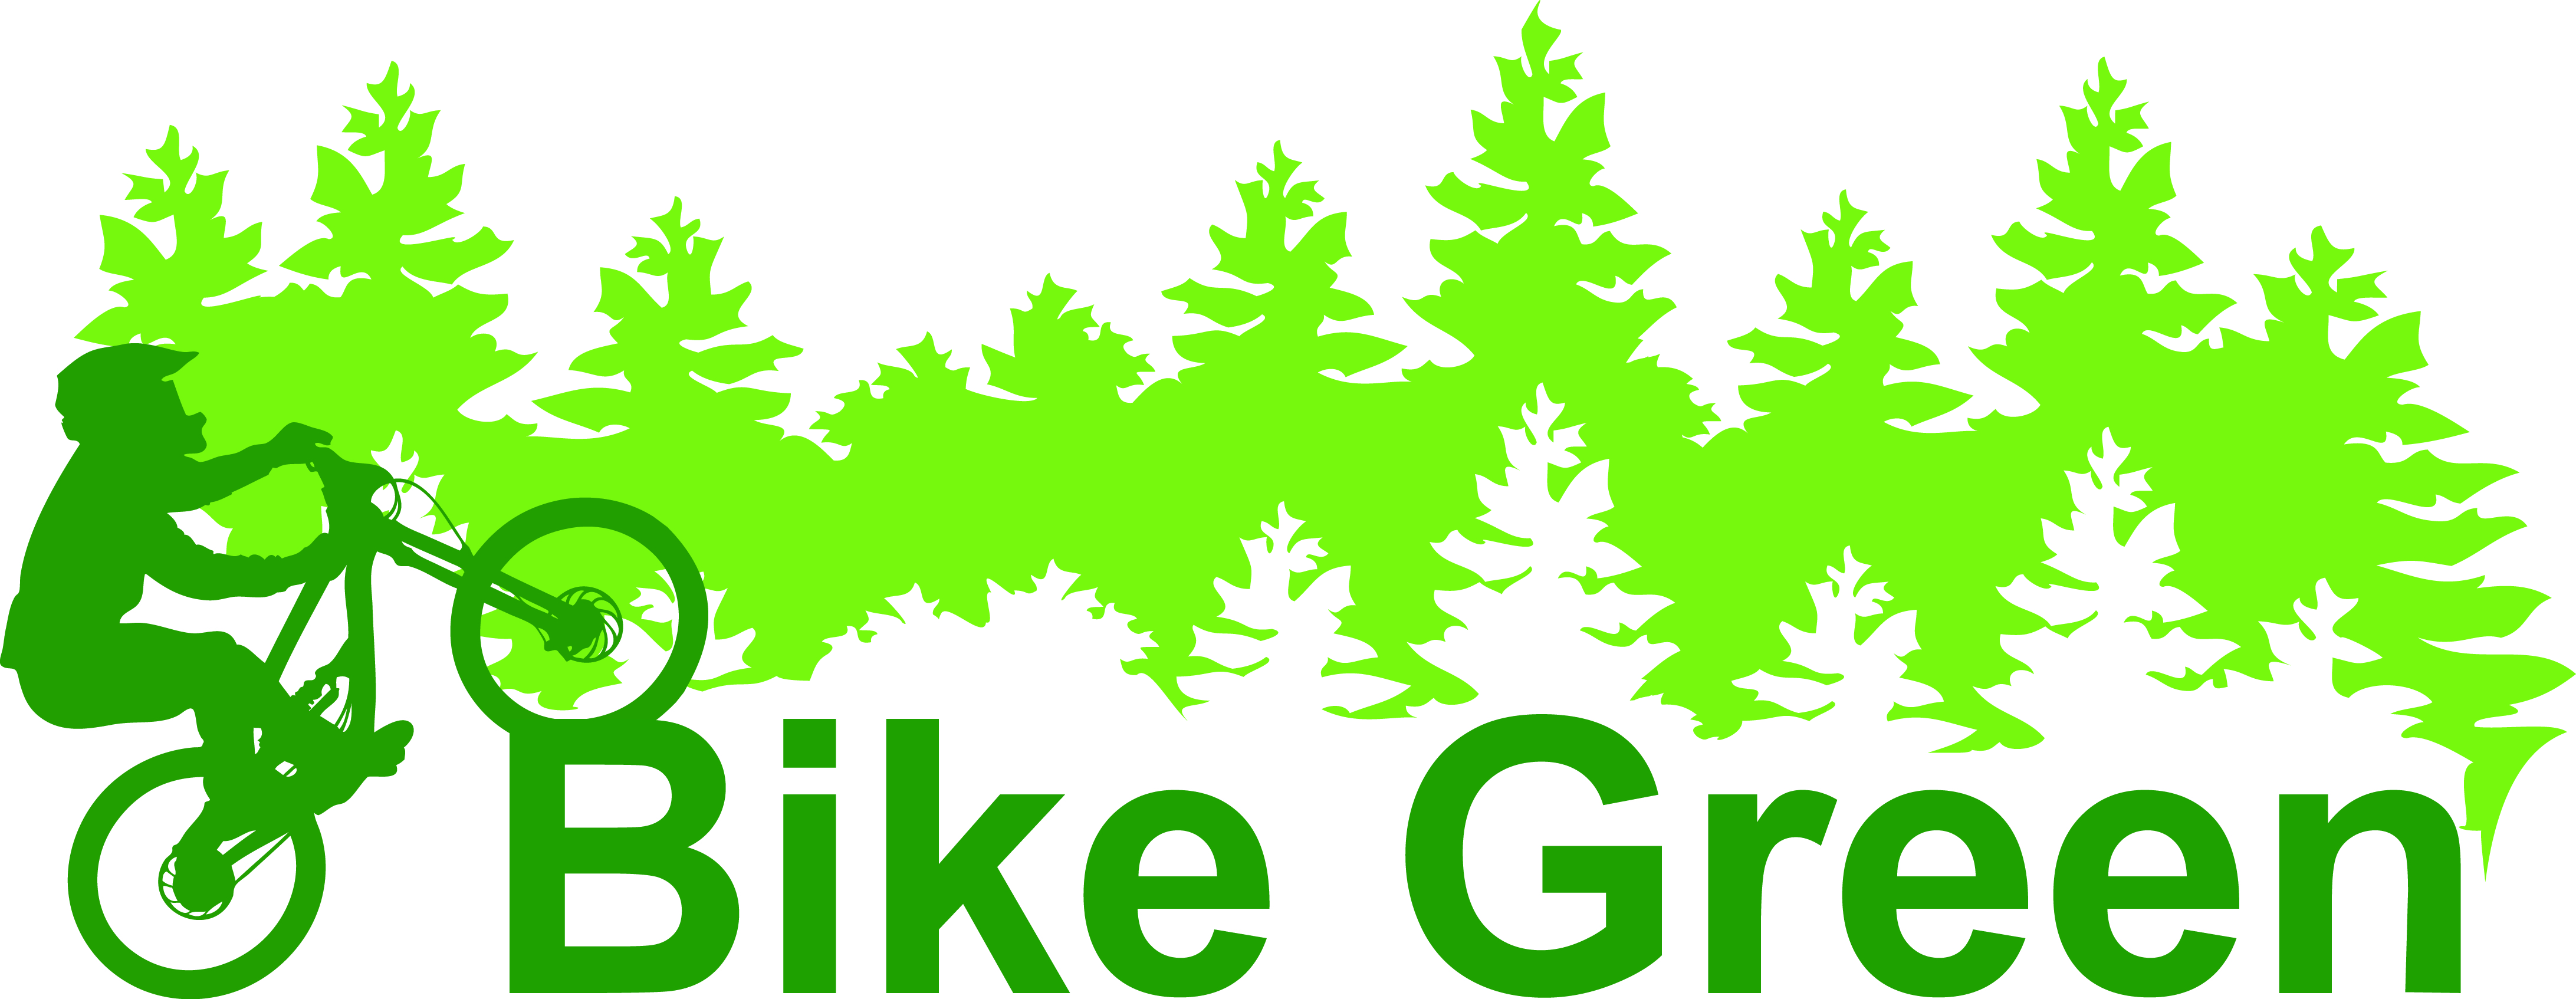 Bike Green Logo Complete